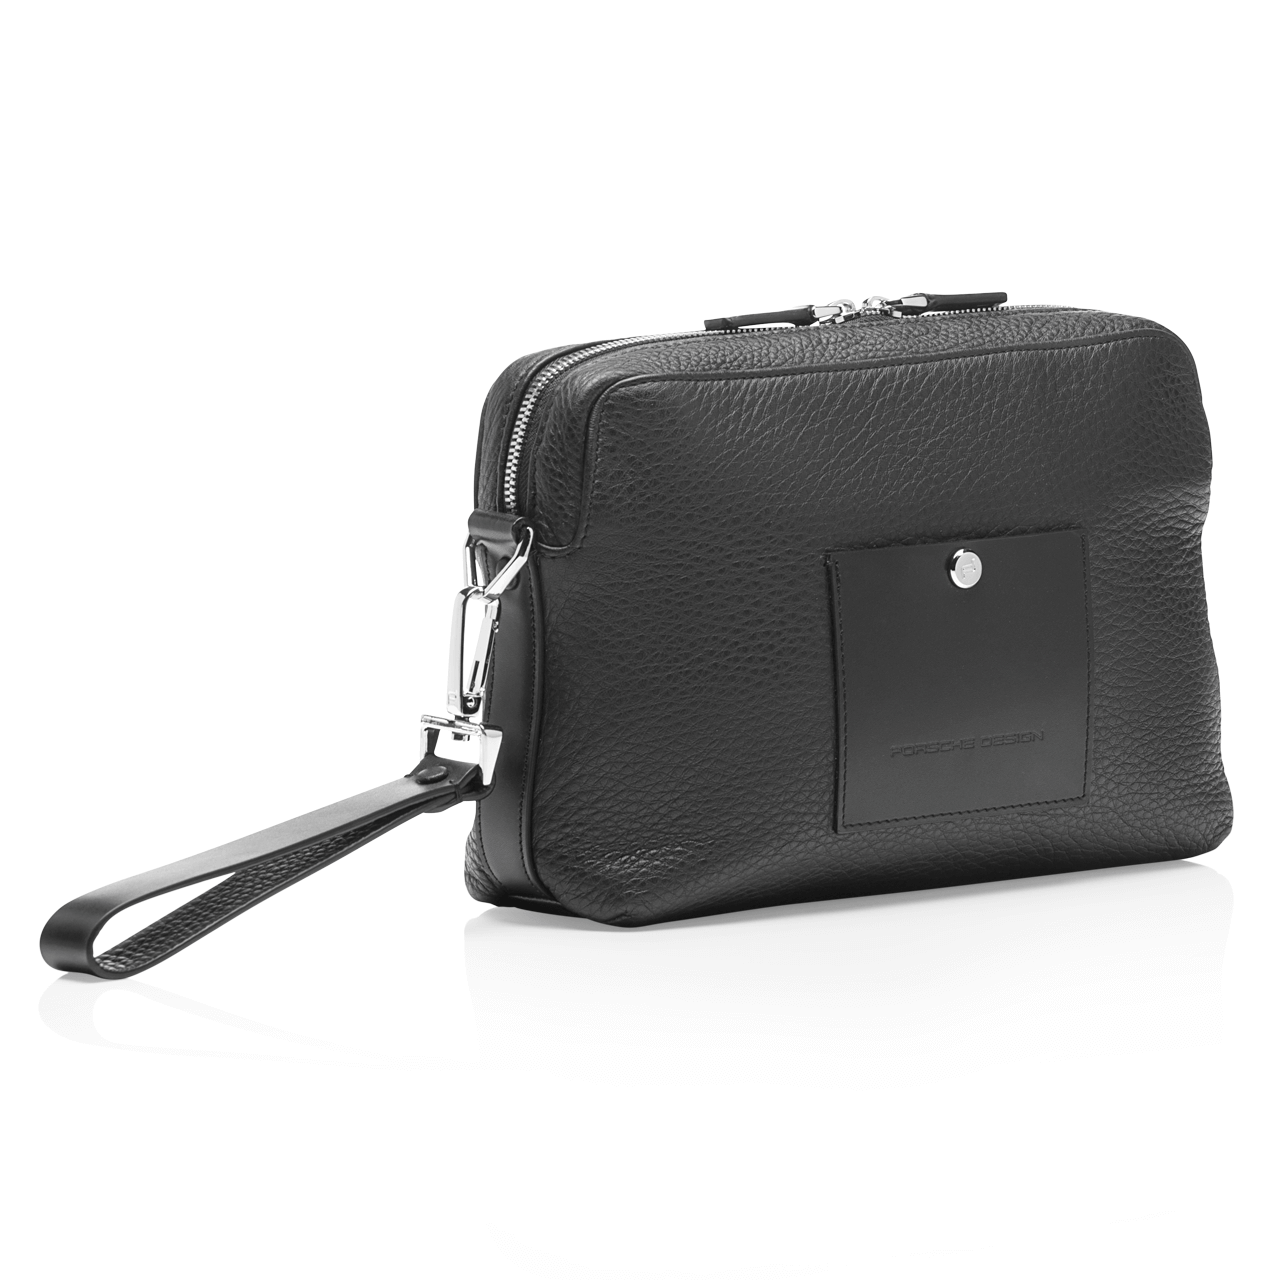 VOYAGER ACCESSORY BAG - фото 1